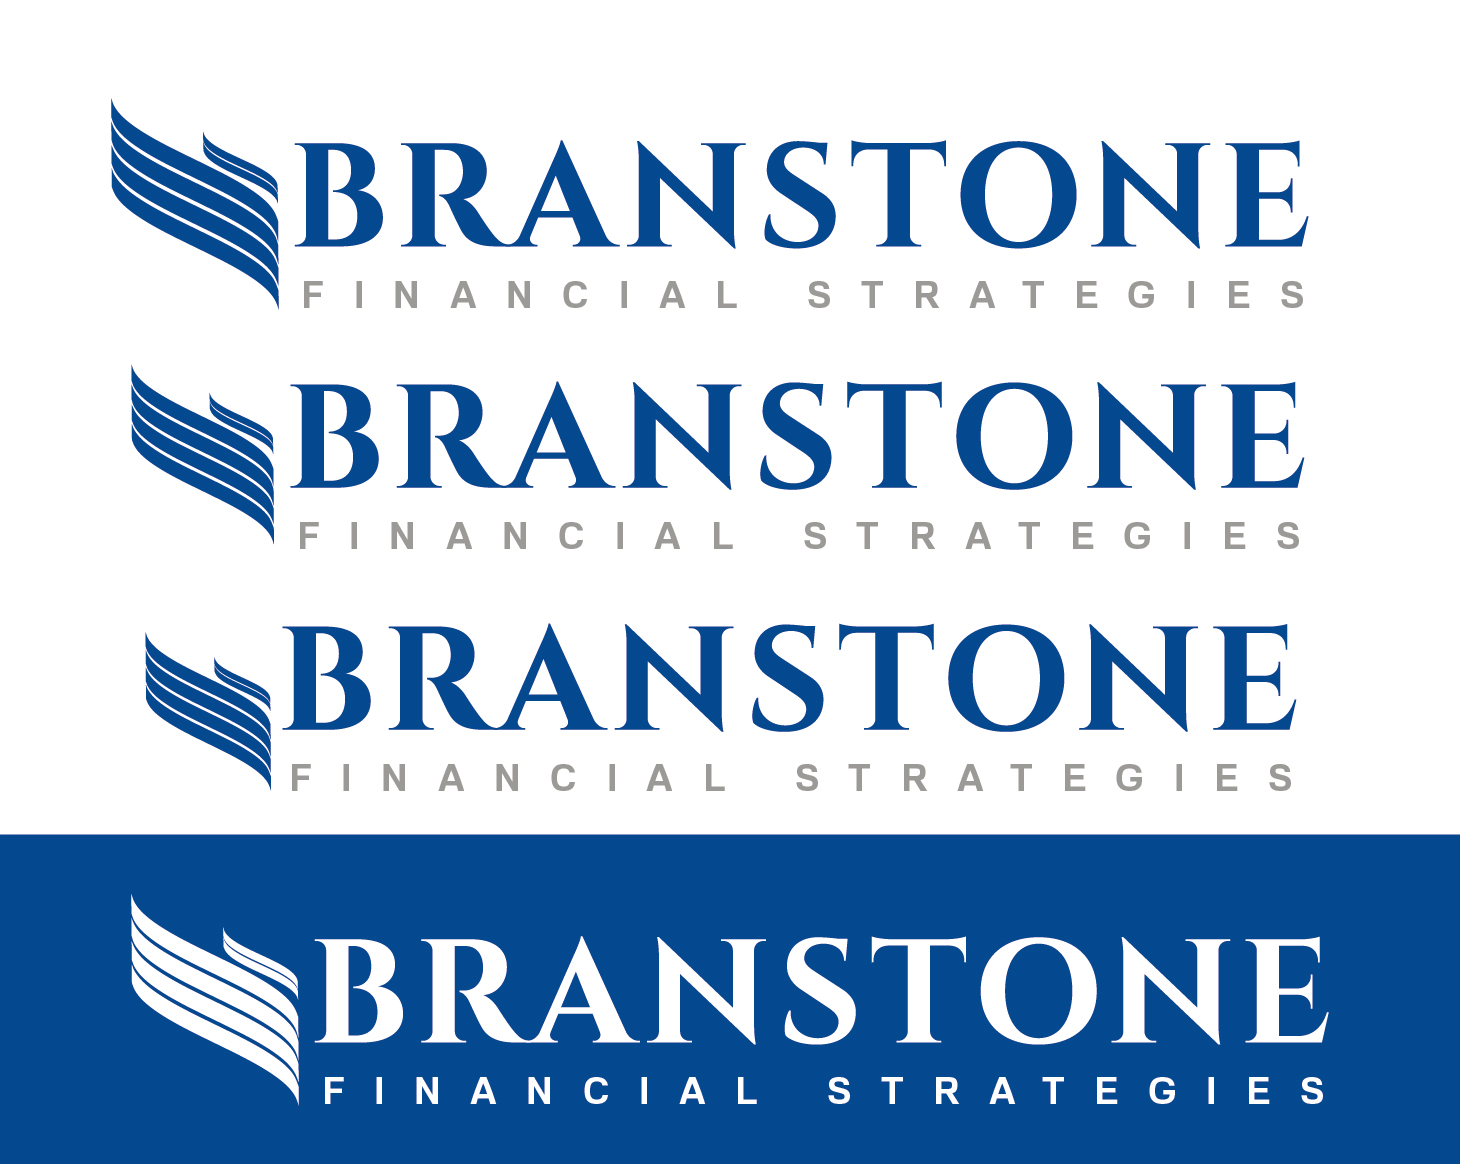 Logo Design by VENTSISLAV KOVACHEV - Entry No. 215 in the Logo Design Contest Inspiring Logo Design for Branstone Financial Strategies.